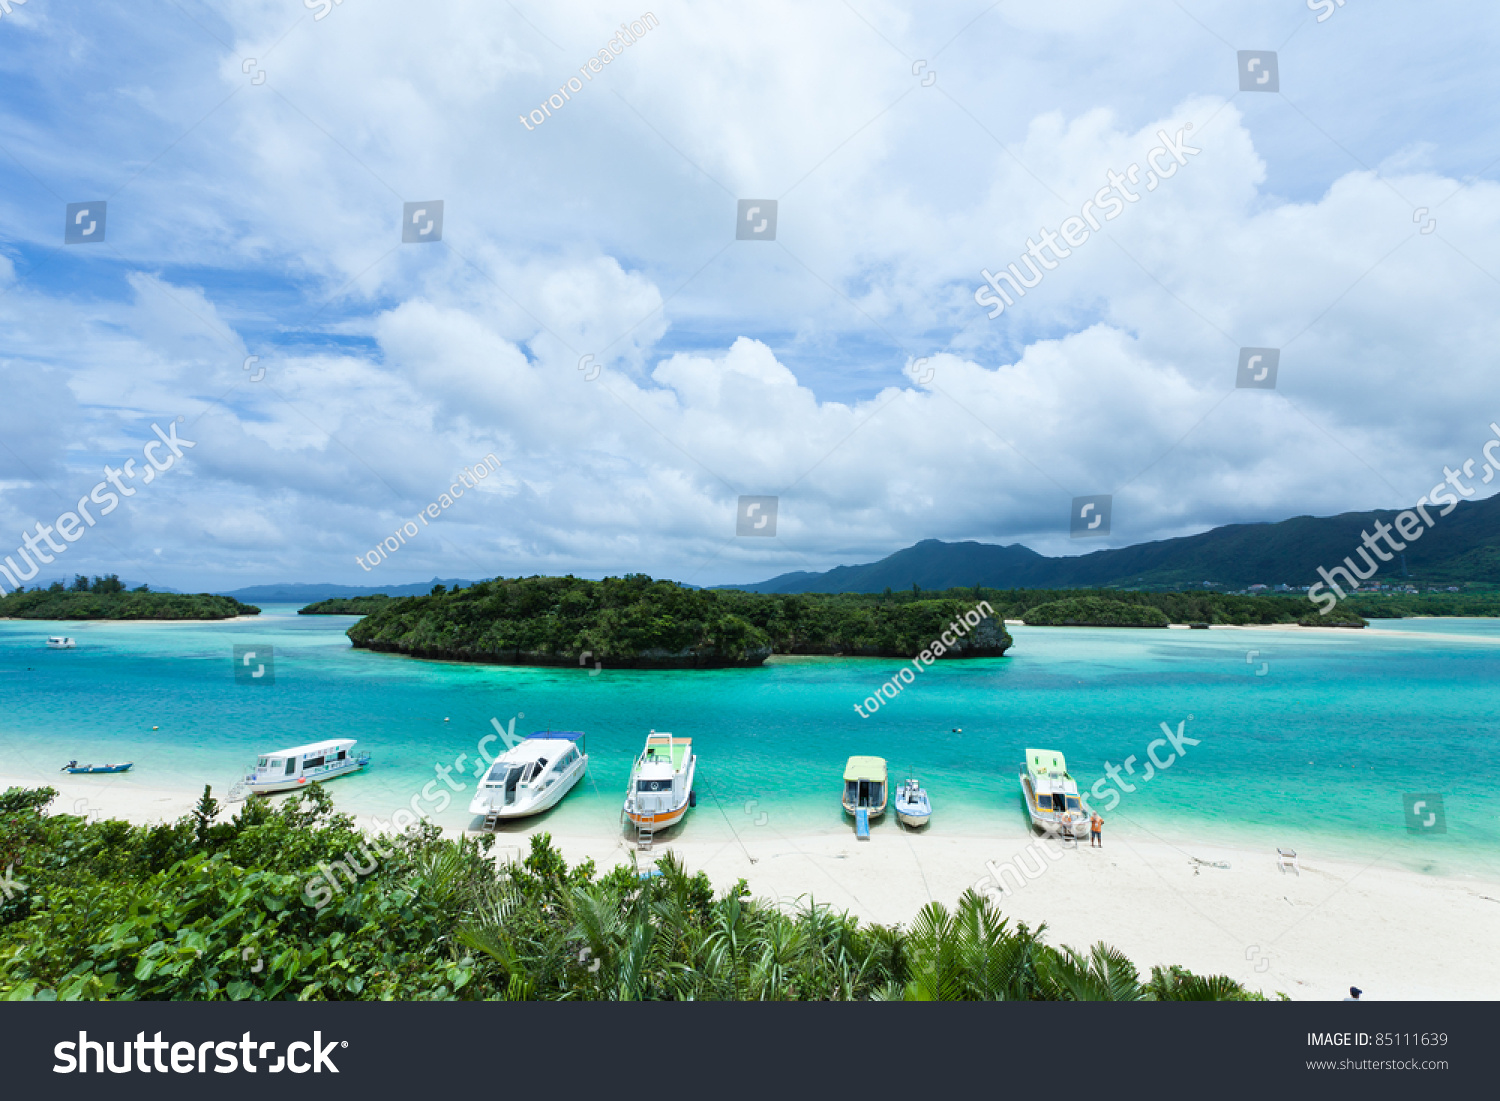 Lagoon Tropical Island: Tropical Island Lagoon Clear Blue Water Stock Photo